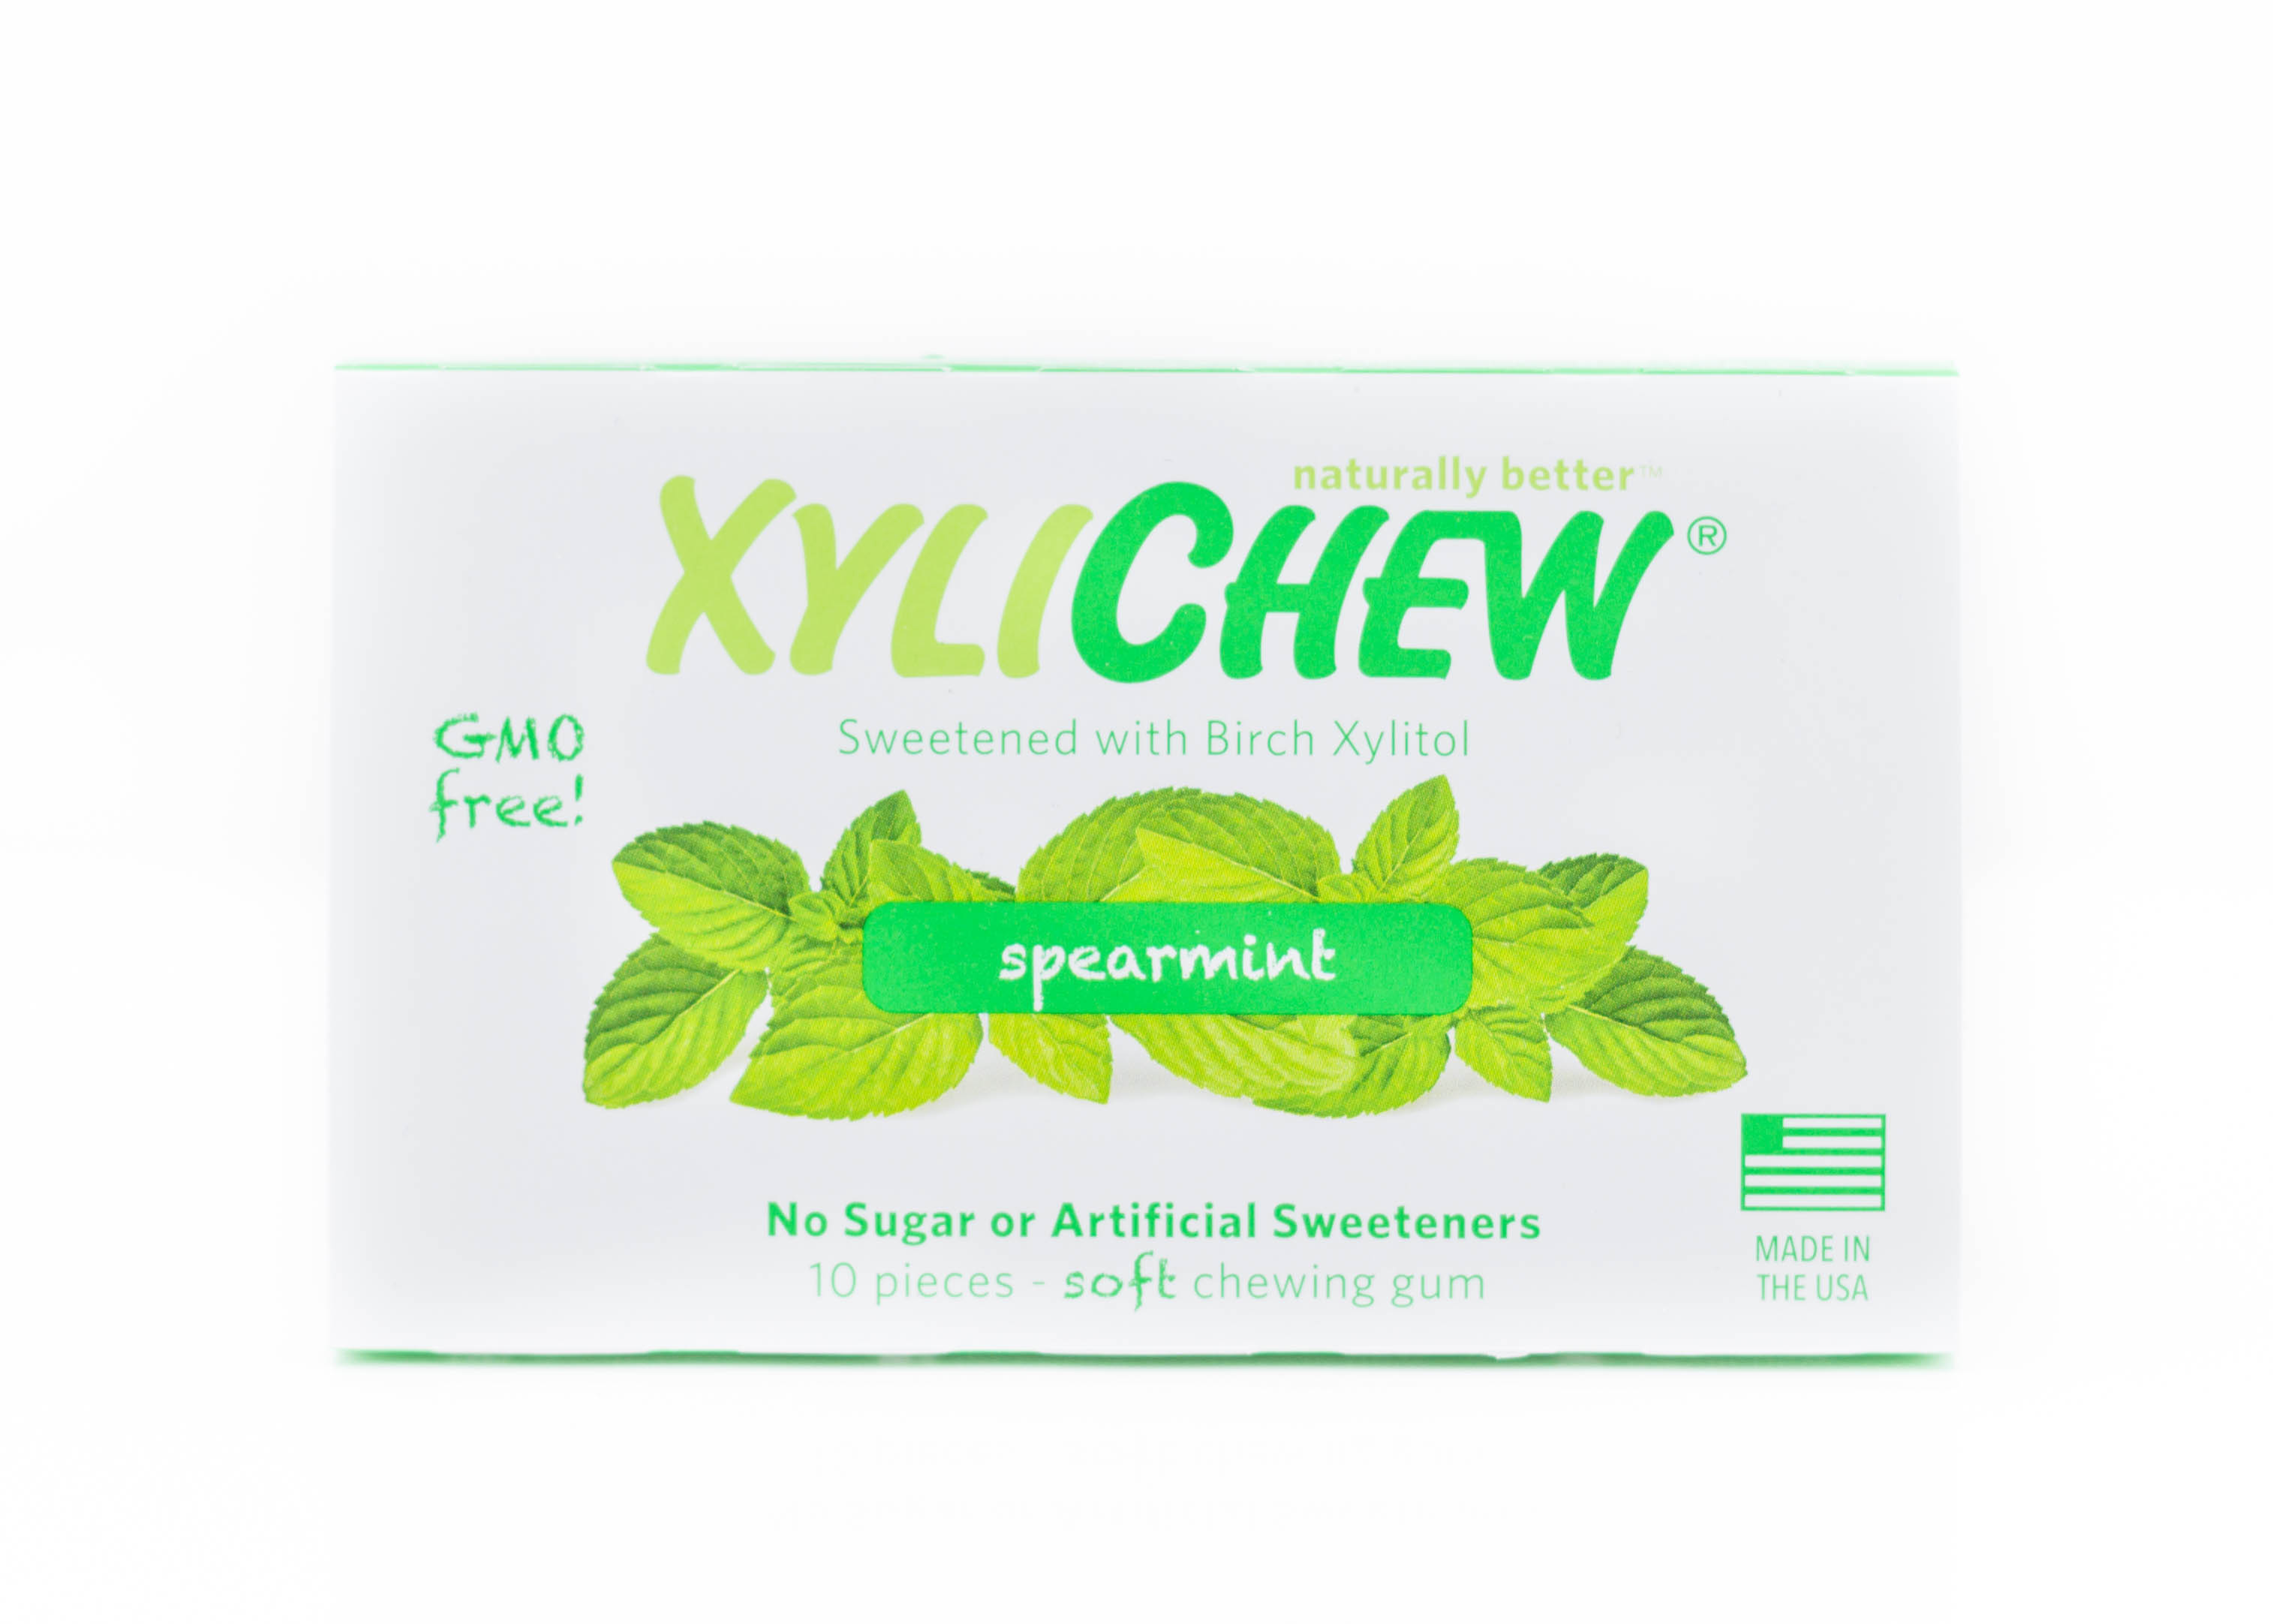 XyliChew Spearmint Gum (60 pieces) $8.66 - This naturally delicious chewing gum is GMO free, contains no sugar or artificial sweeteners and is gluten free. They use Birch Xylitol extracted from sustainable US forests. It helps reduce the acid-producing bacteria that erodes tooth enamel. Other flavors include cinnamon, peppermint, ice mint and fruit. Some ingredients include vegetable glycerin and sunflower lecithin. You can enjoy a treat without worrying about chewing something that contains anything harmful. I love the spearmint flavor and it keeps your mouth feeling fresh.